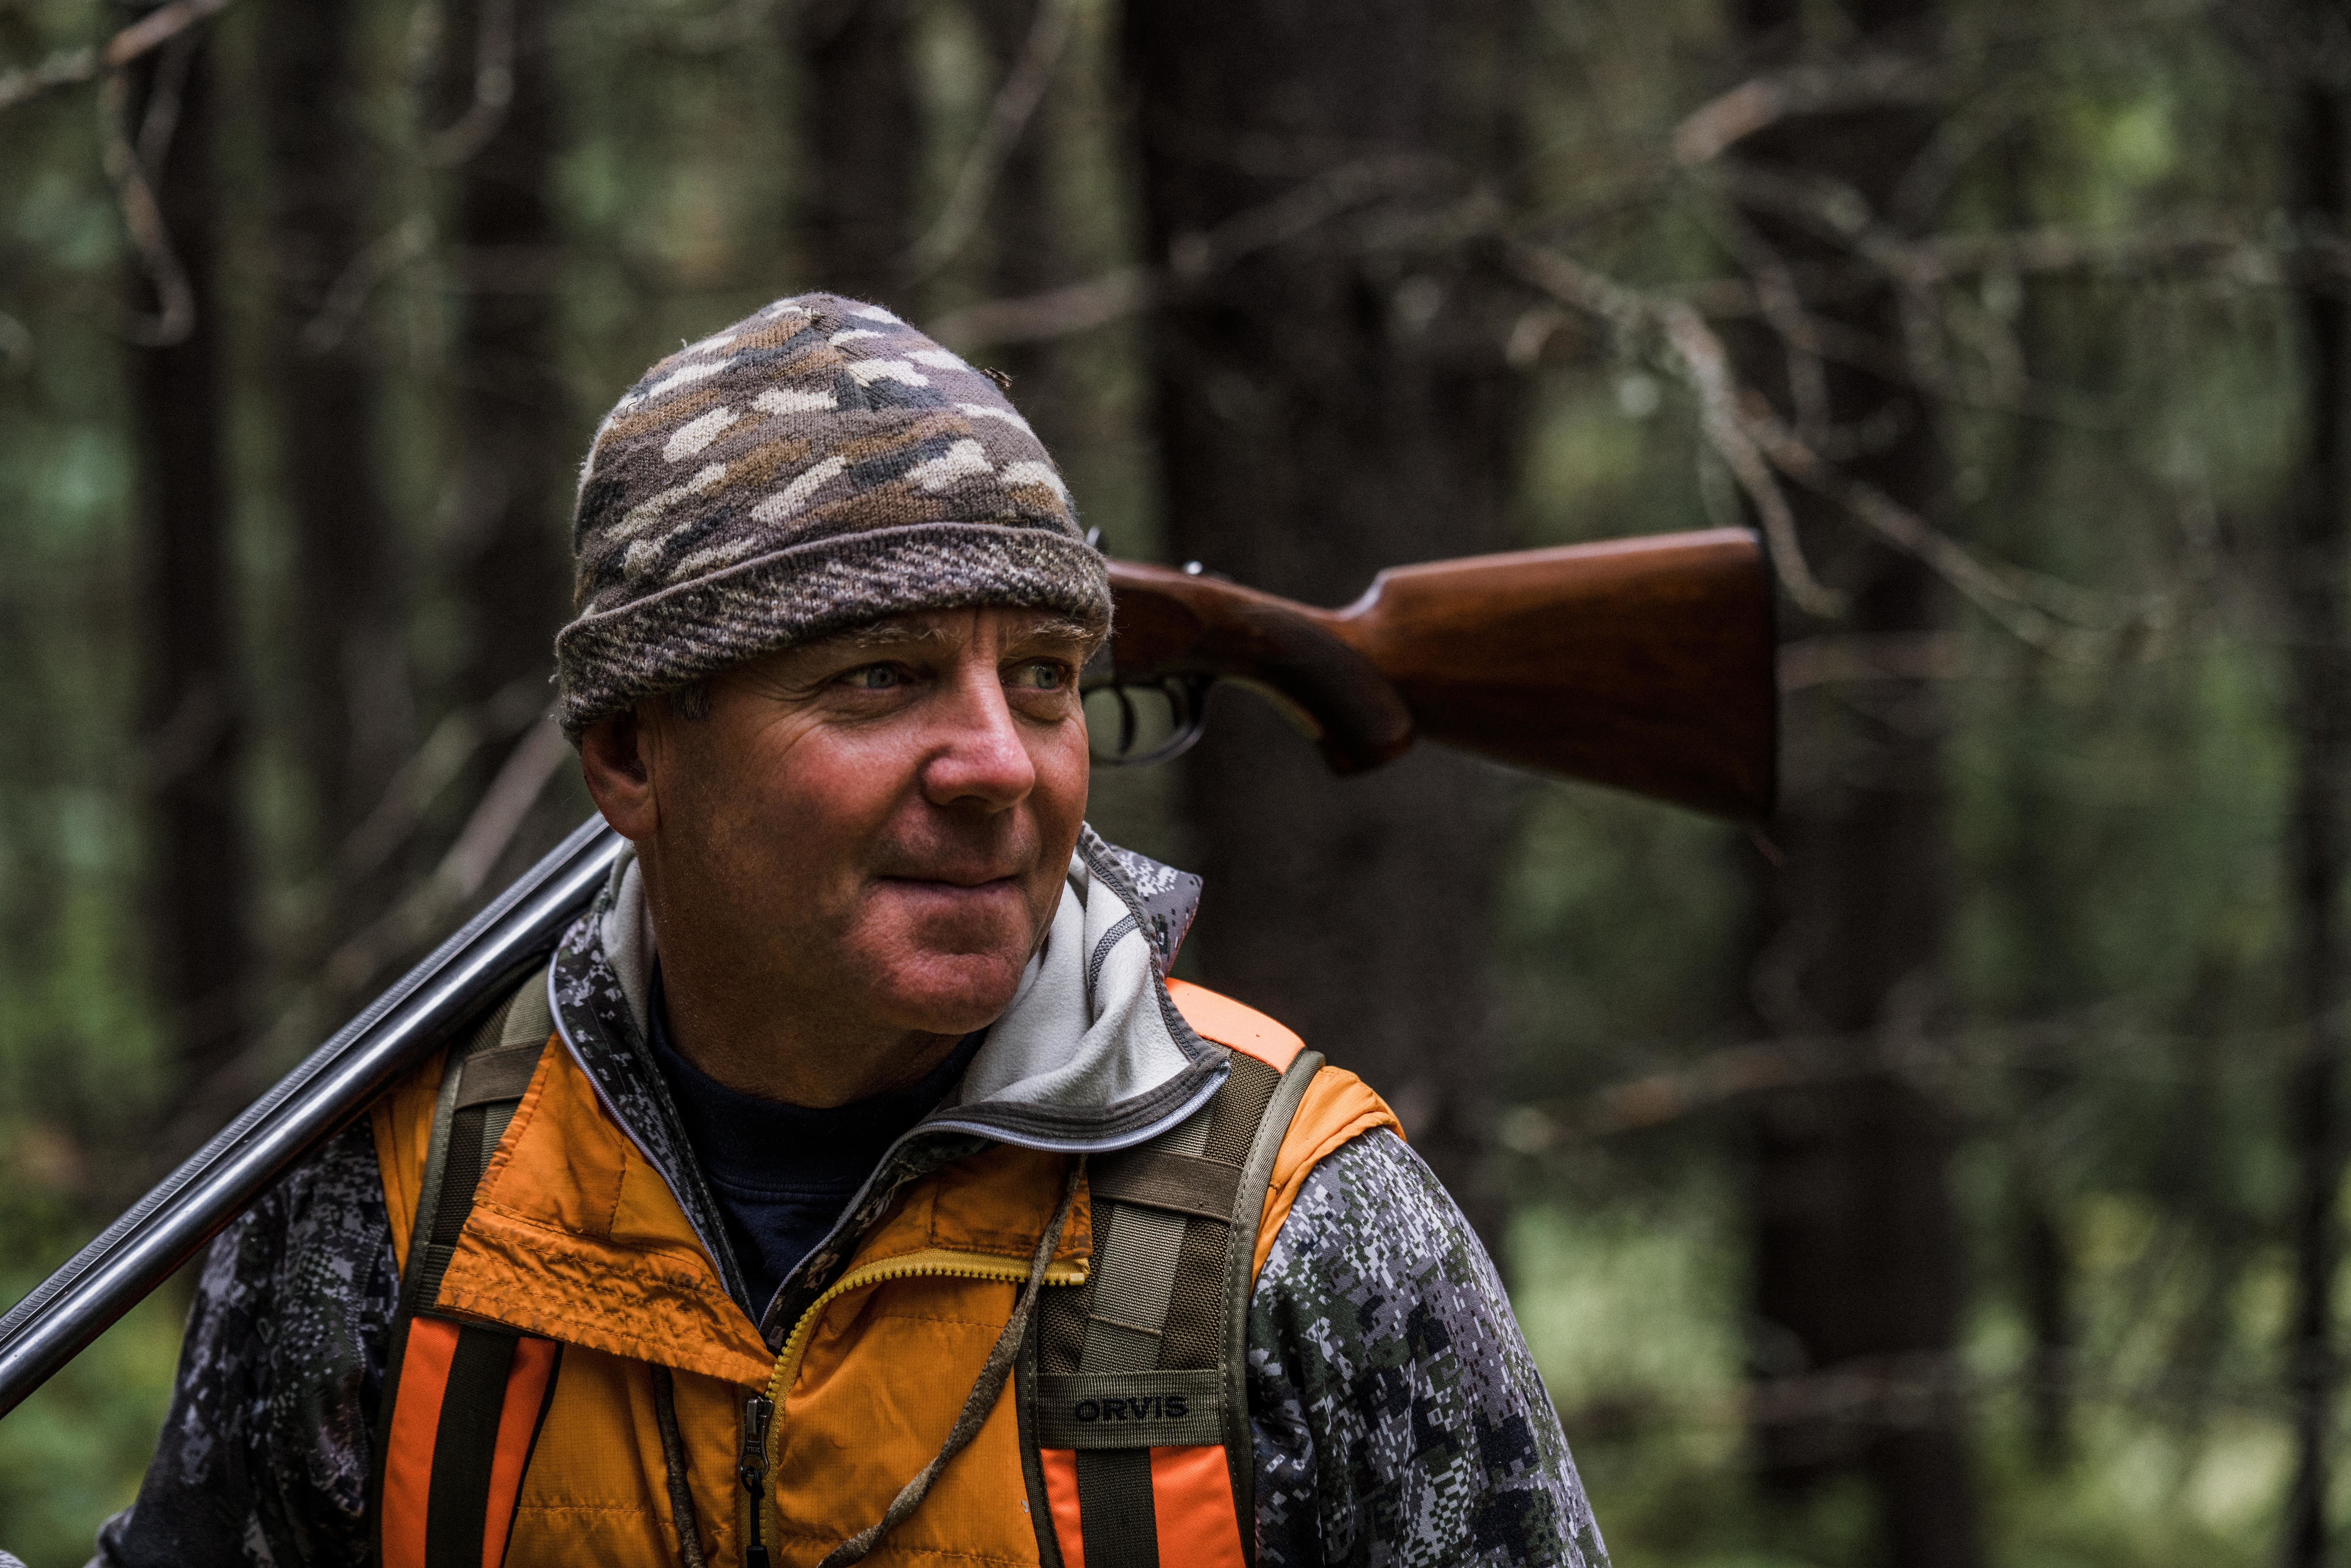 Montana outfitter Tim Linehan carries a shotgun while grouse hunting.